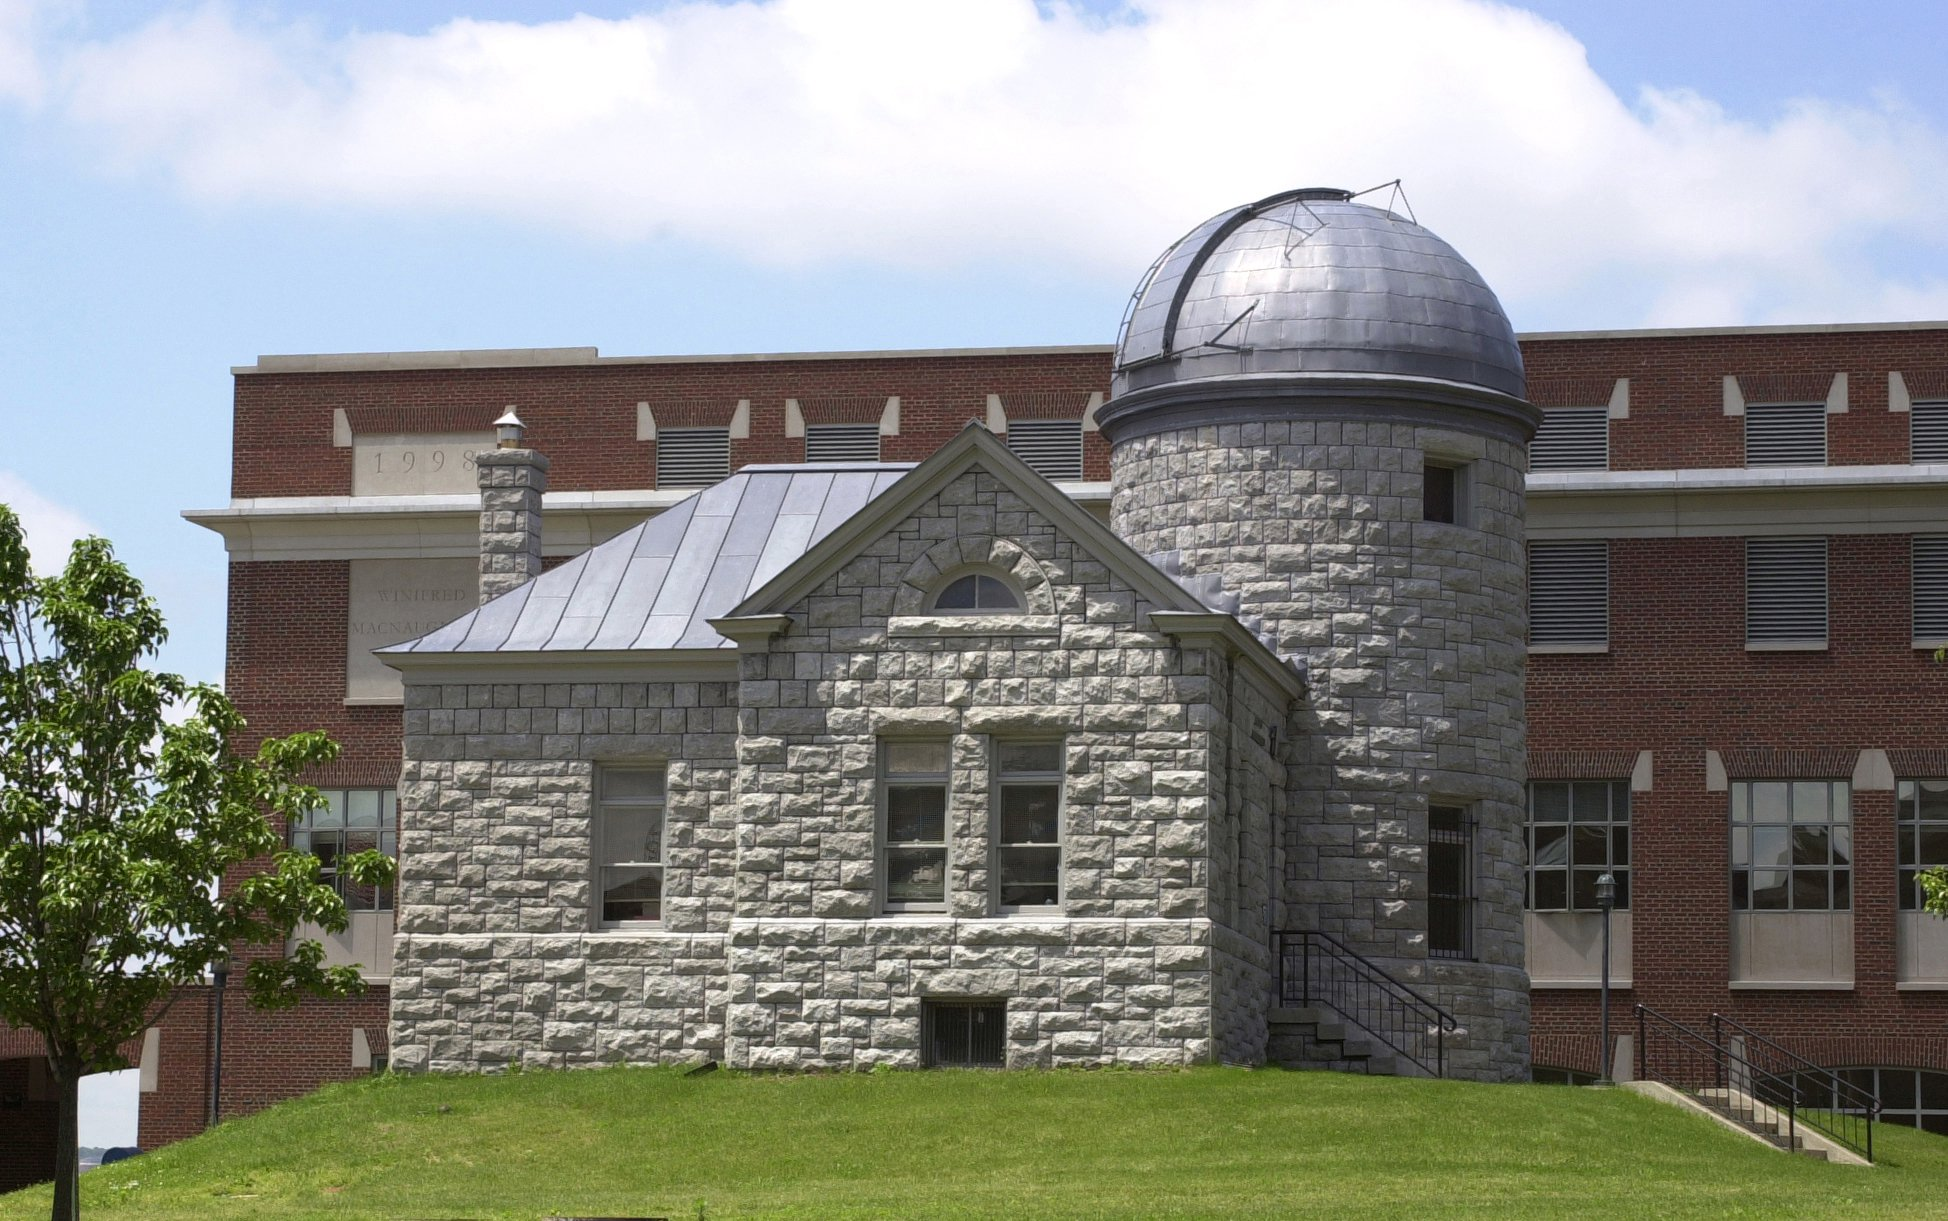 exterior of the Holden Observatory